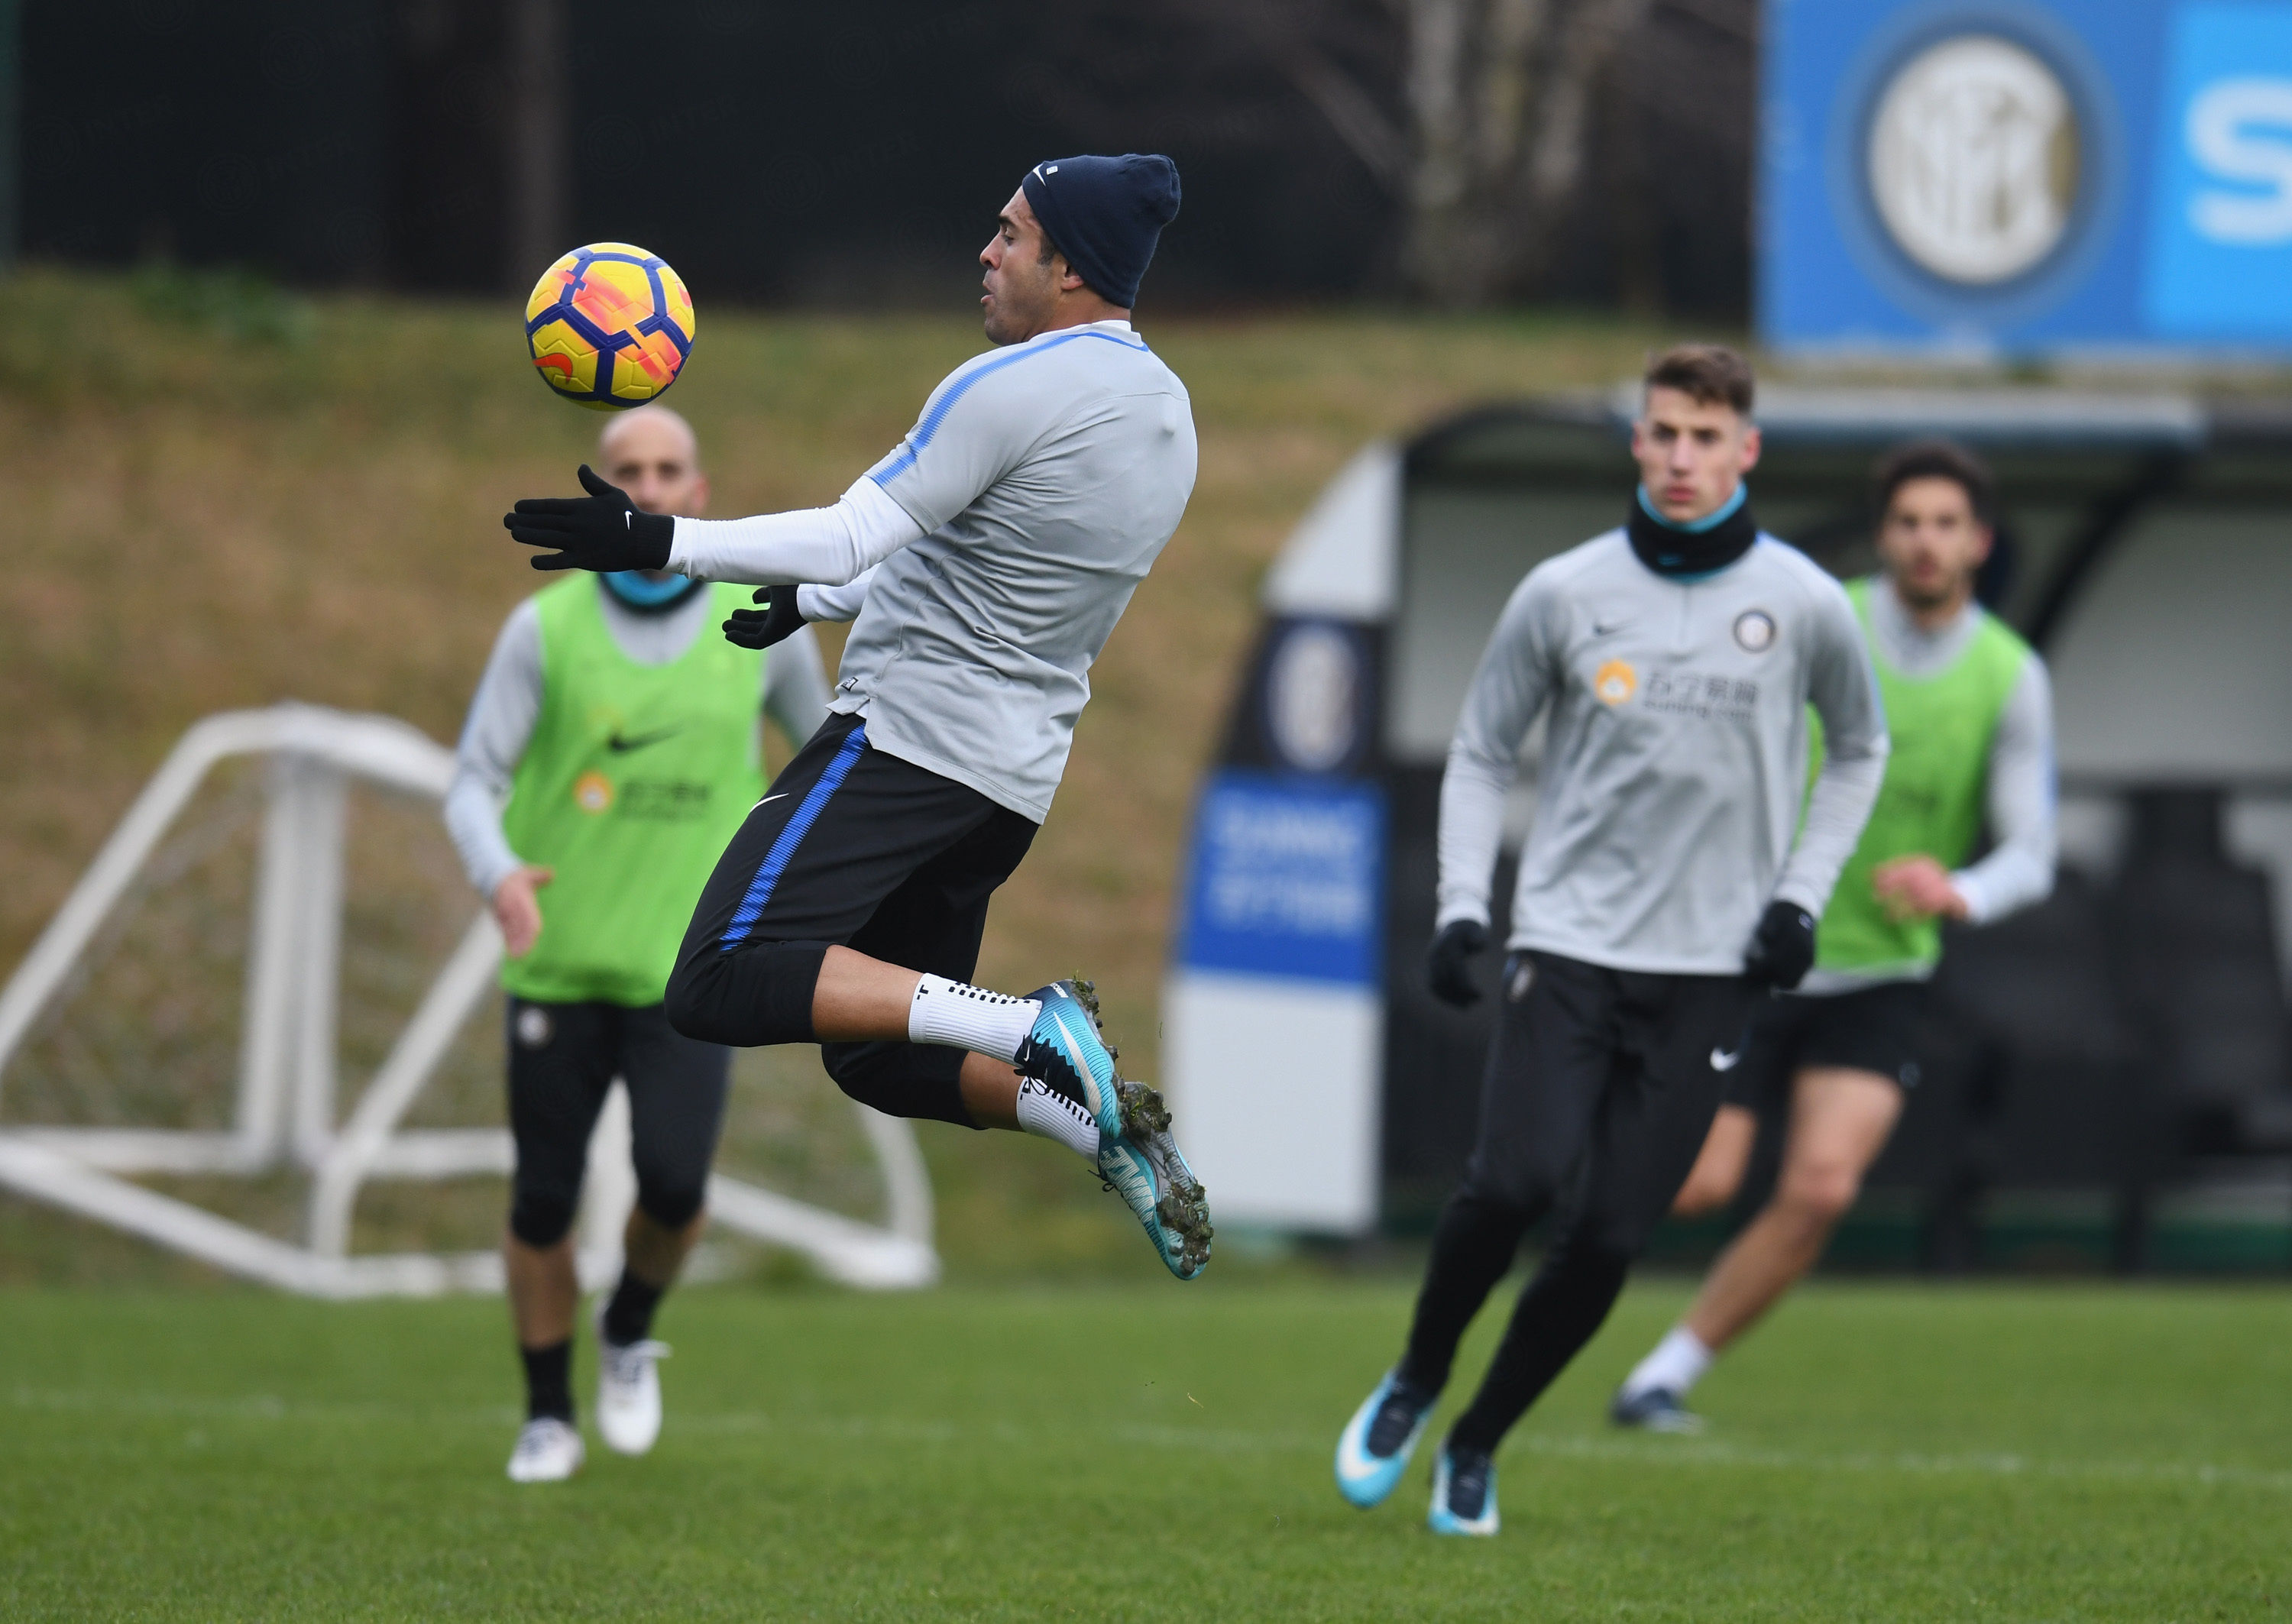 Team complete final preparations prior to Spal vs. Inter